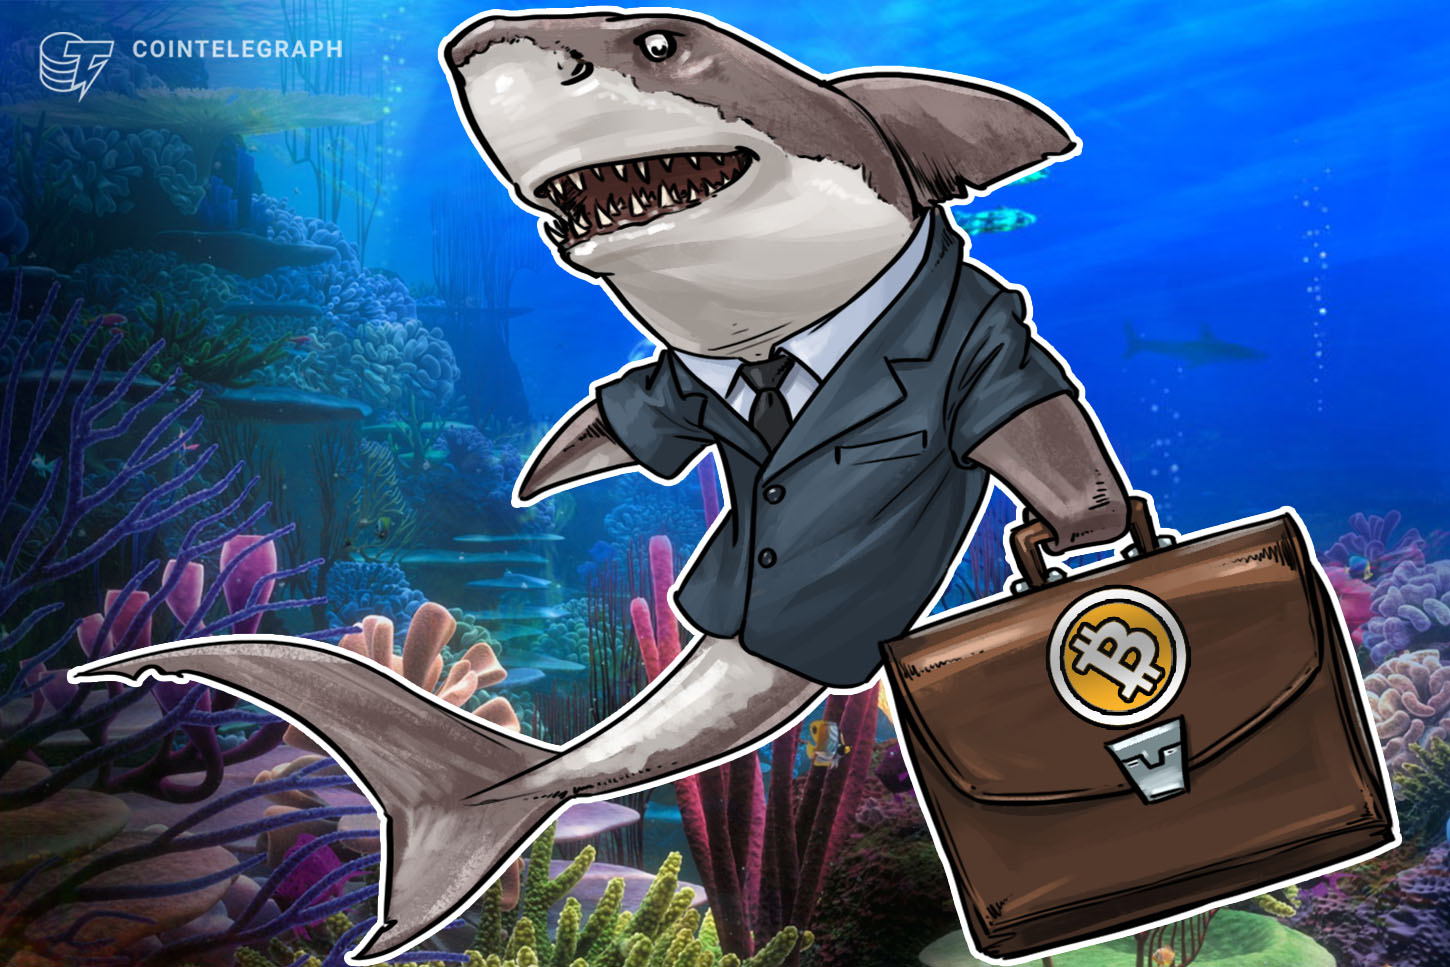 Former Prudential Securities Chief Executive Ball Bats for Bitcoin